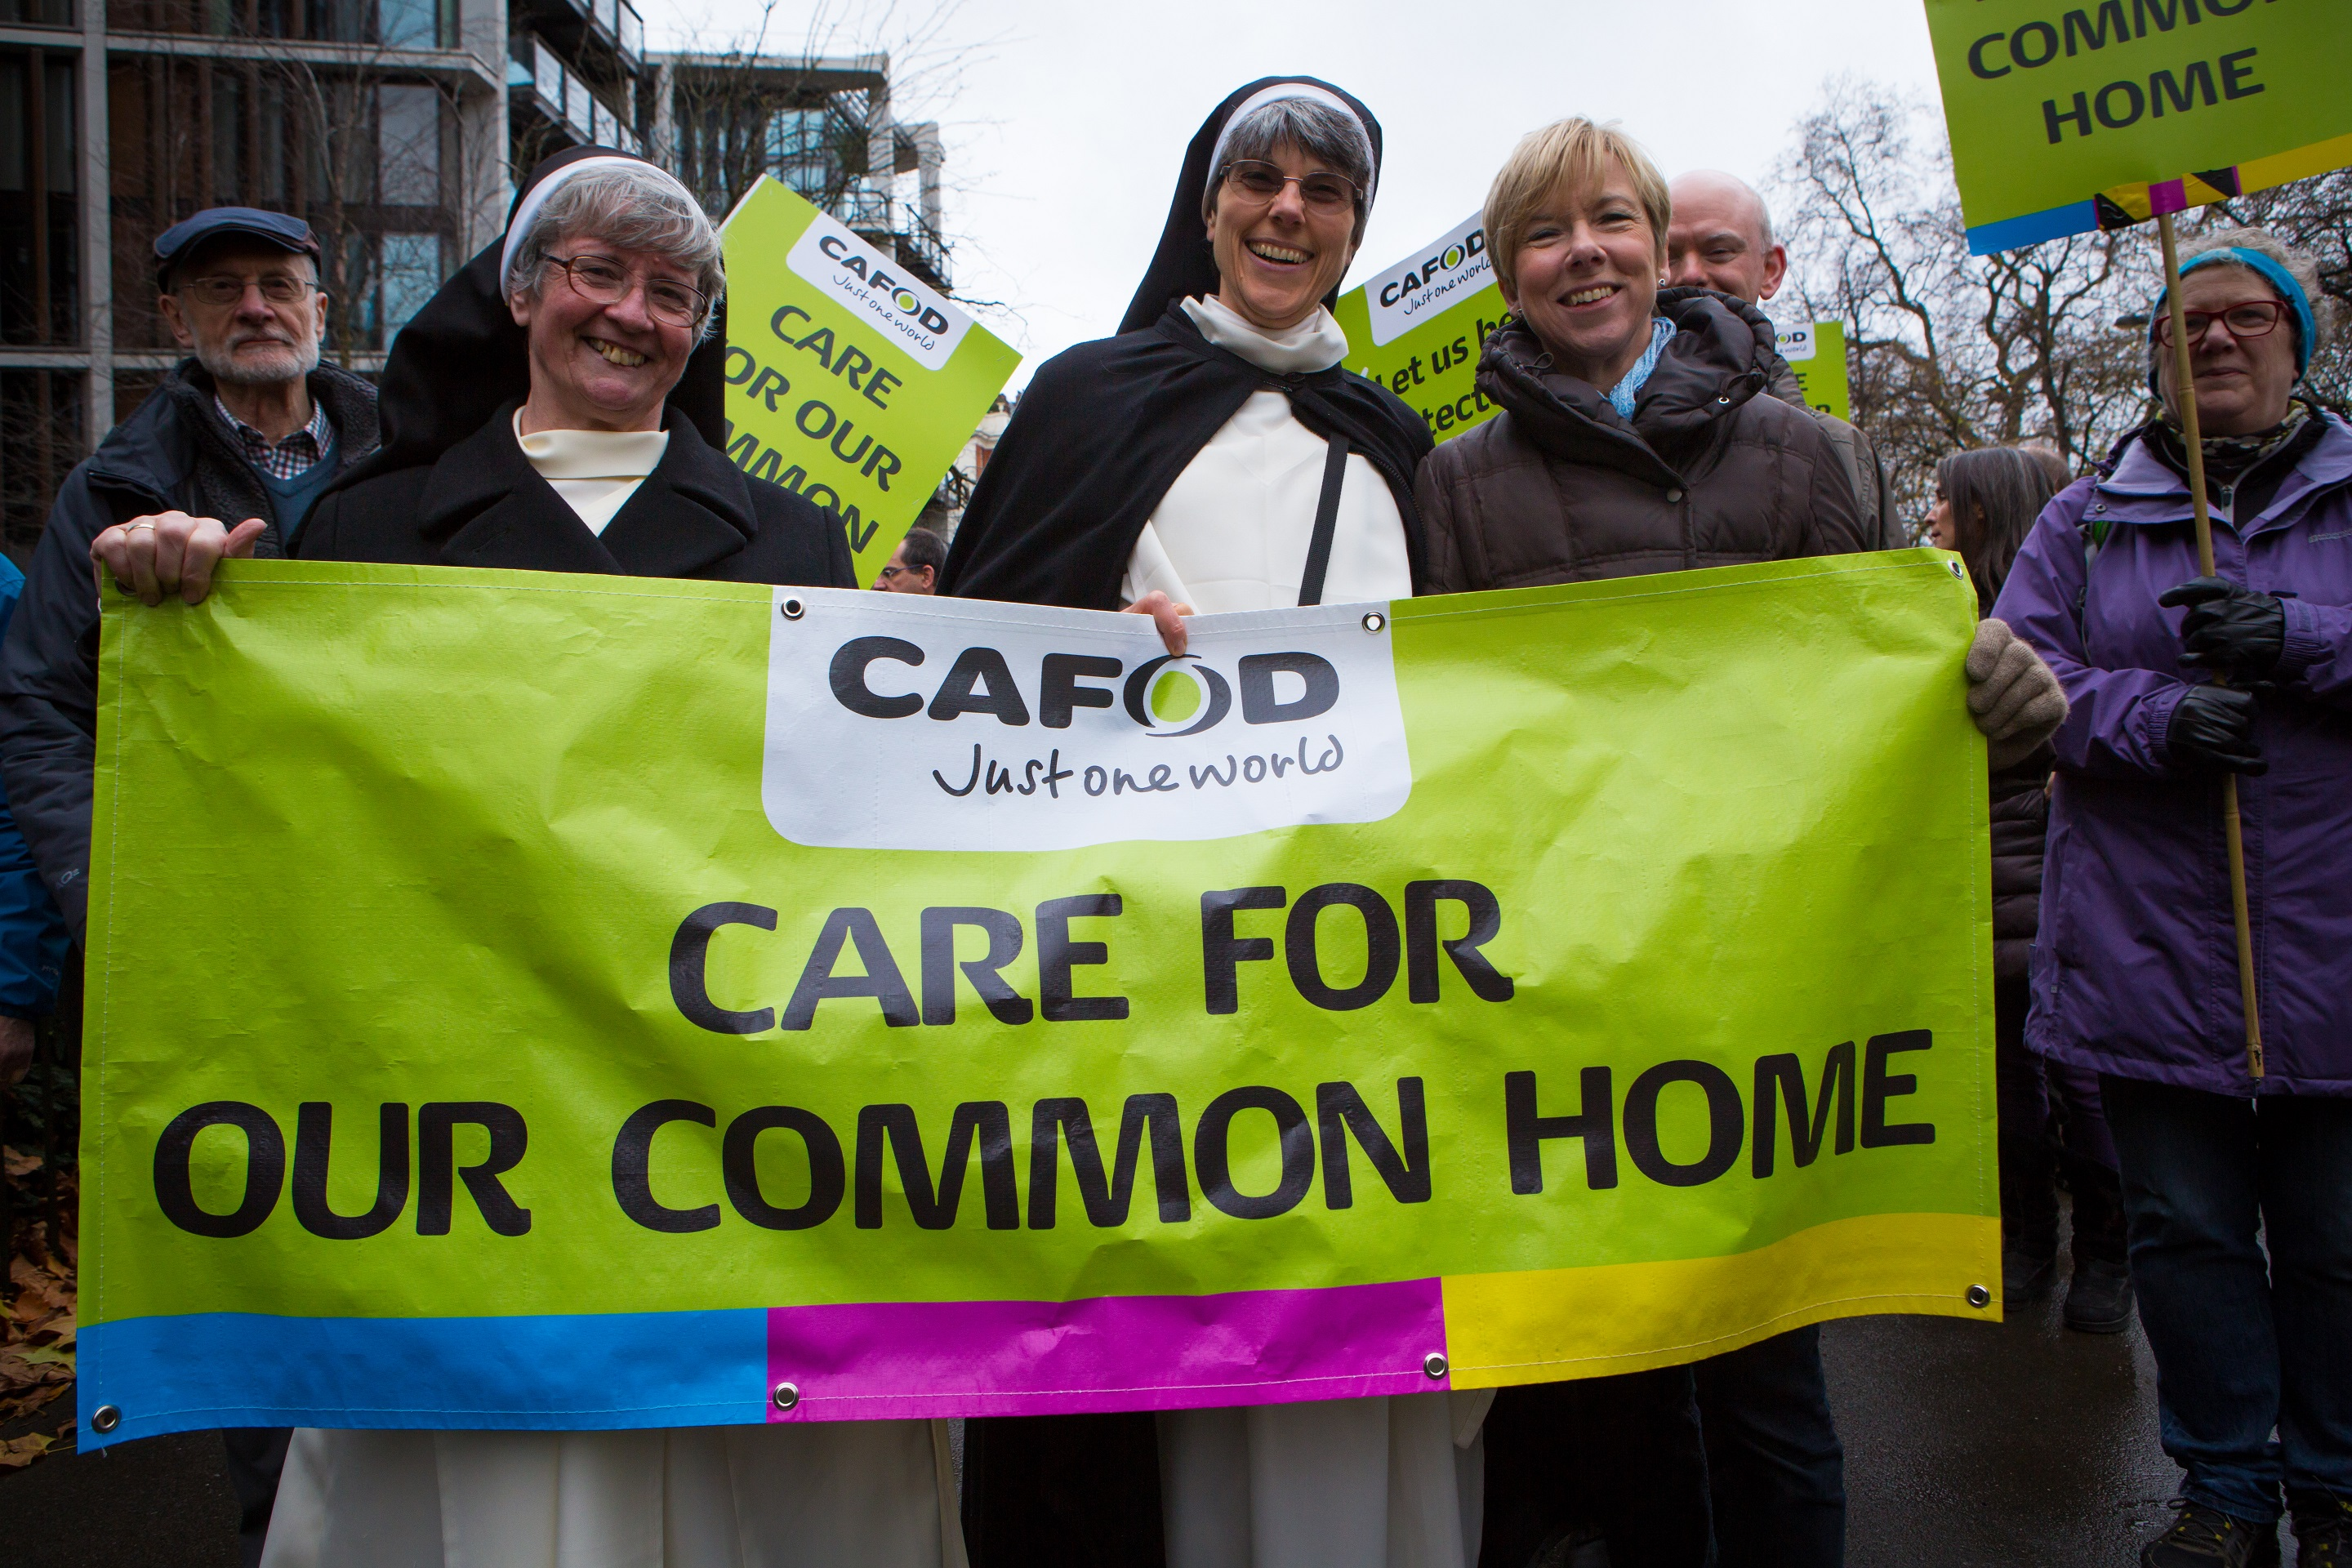 Sr Karen joined tens of thousands of people marching through London for action on climate change